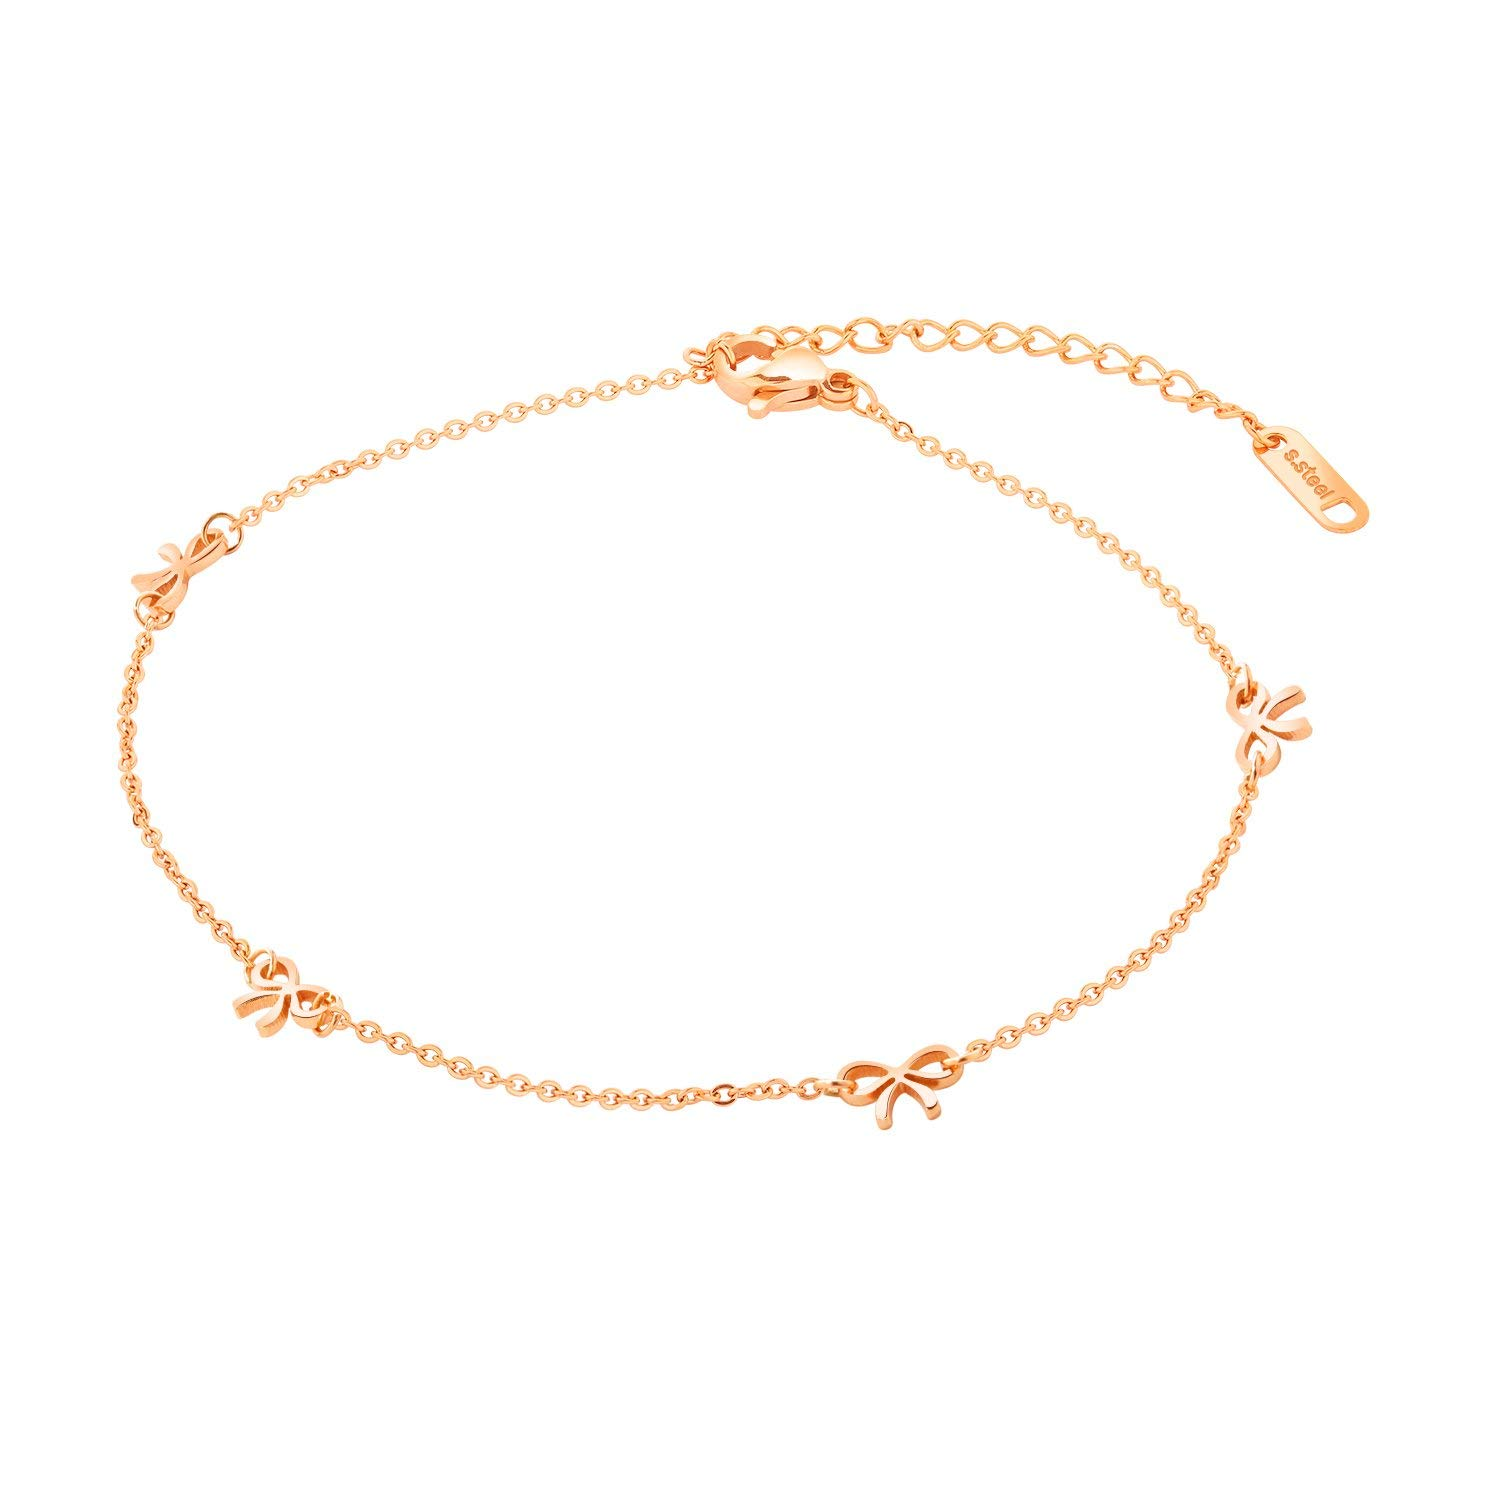 0e6c96523 Get Quotations · OPK Stainless Steel Rose Gold Women Anklet, Cute Bowknot  Pendant Link Chain Beach Foot Jewelry